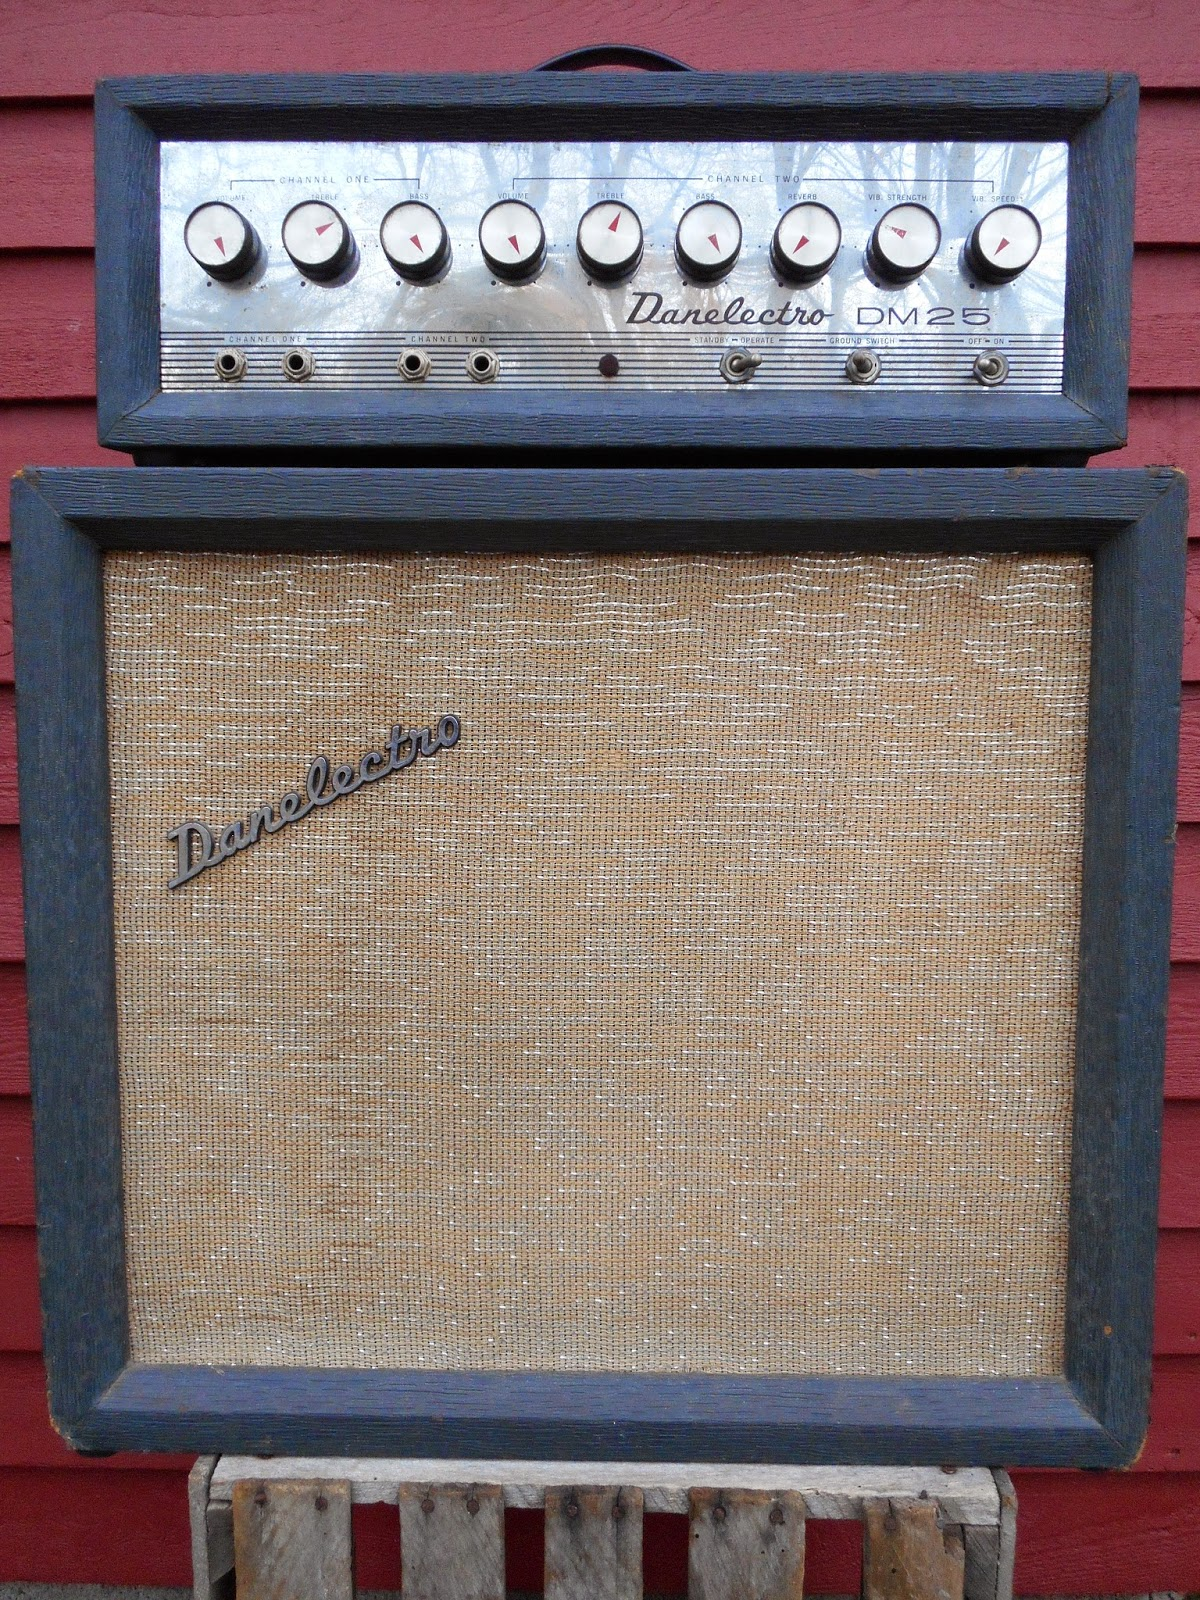 Dating a danelectro dm25 guitar amp